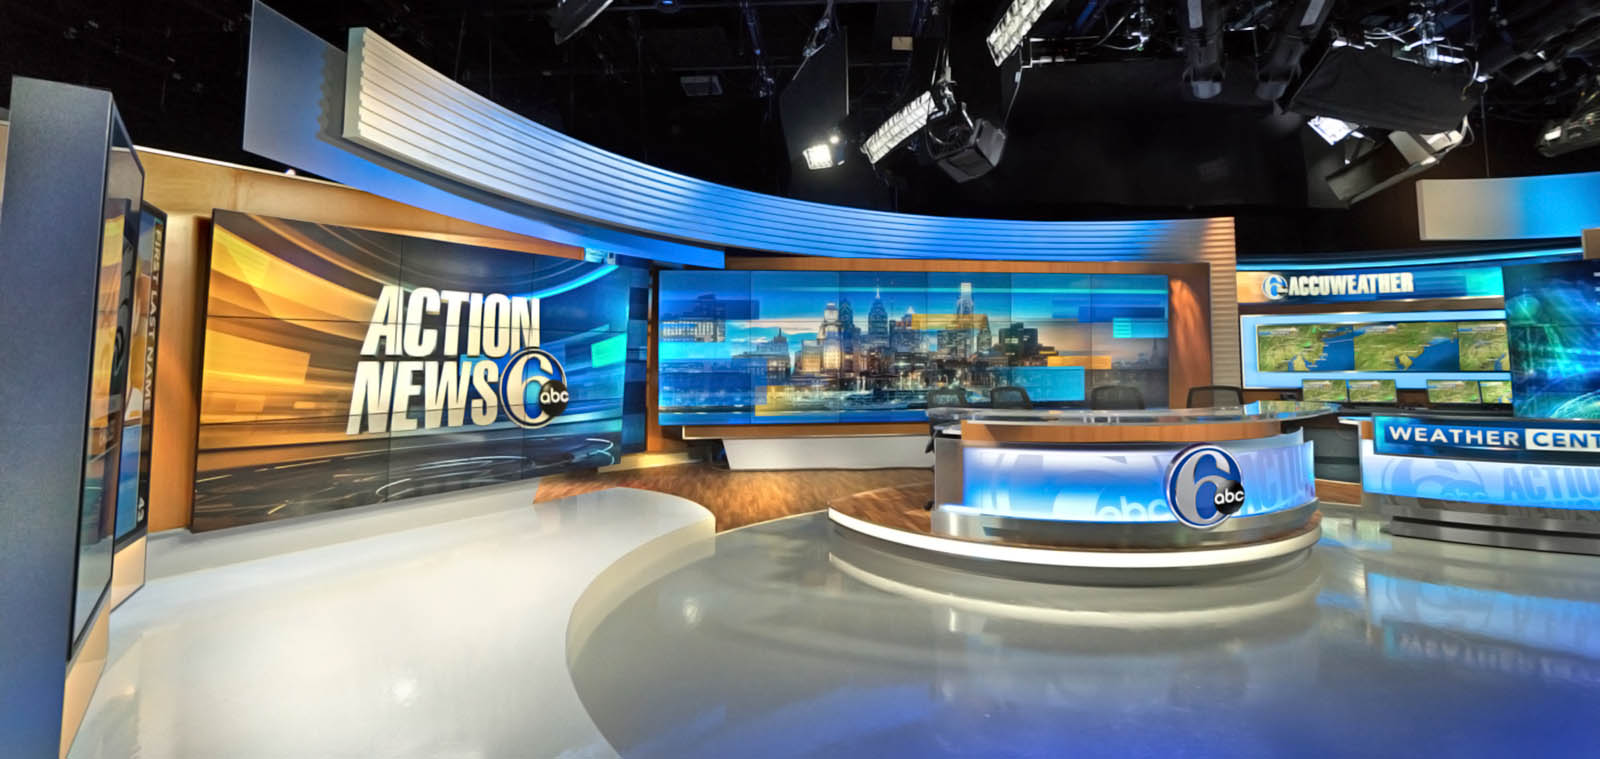 WPVI 6ABC News Philly live coverage studio